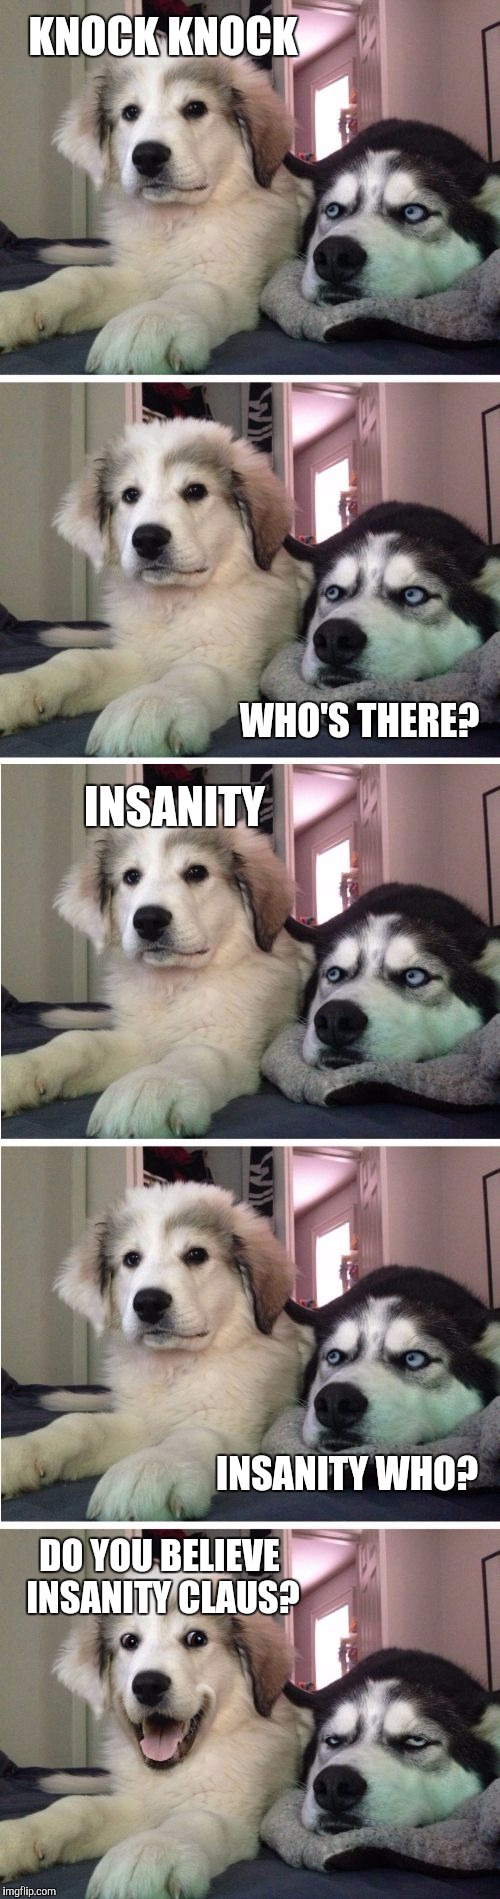 Knock Knock Dogs | KNOCK KNOCK DO YOU BELIEVE INSANITY CLAUS? WHO'S THERE? INSANITY INSANITY WHO? | image tagged in knock knock dogs | made w/ Imgflip meme maker